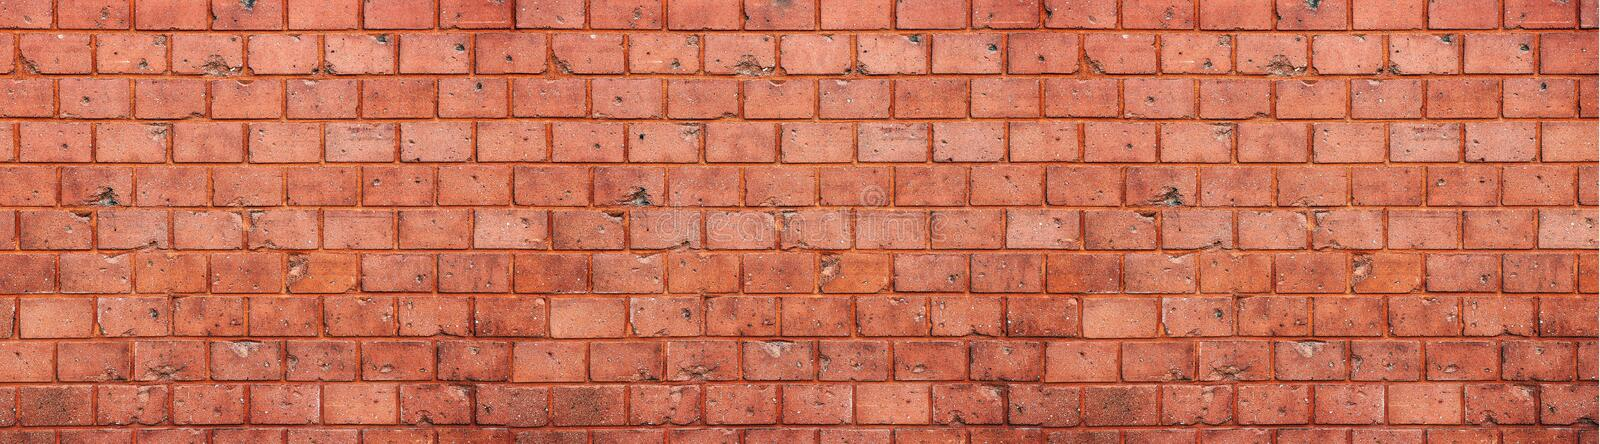 Old and weathered grungy red brick wall texture background in wide panorama format royalty free stock image